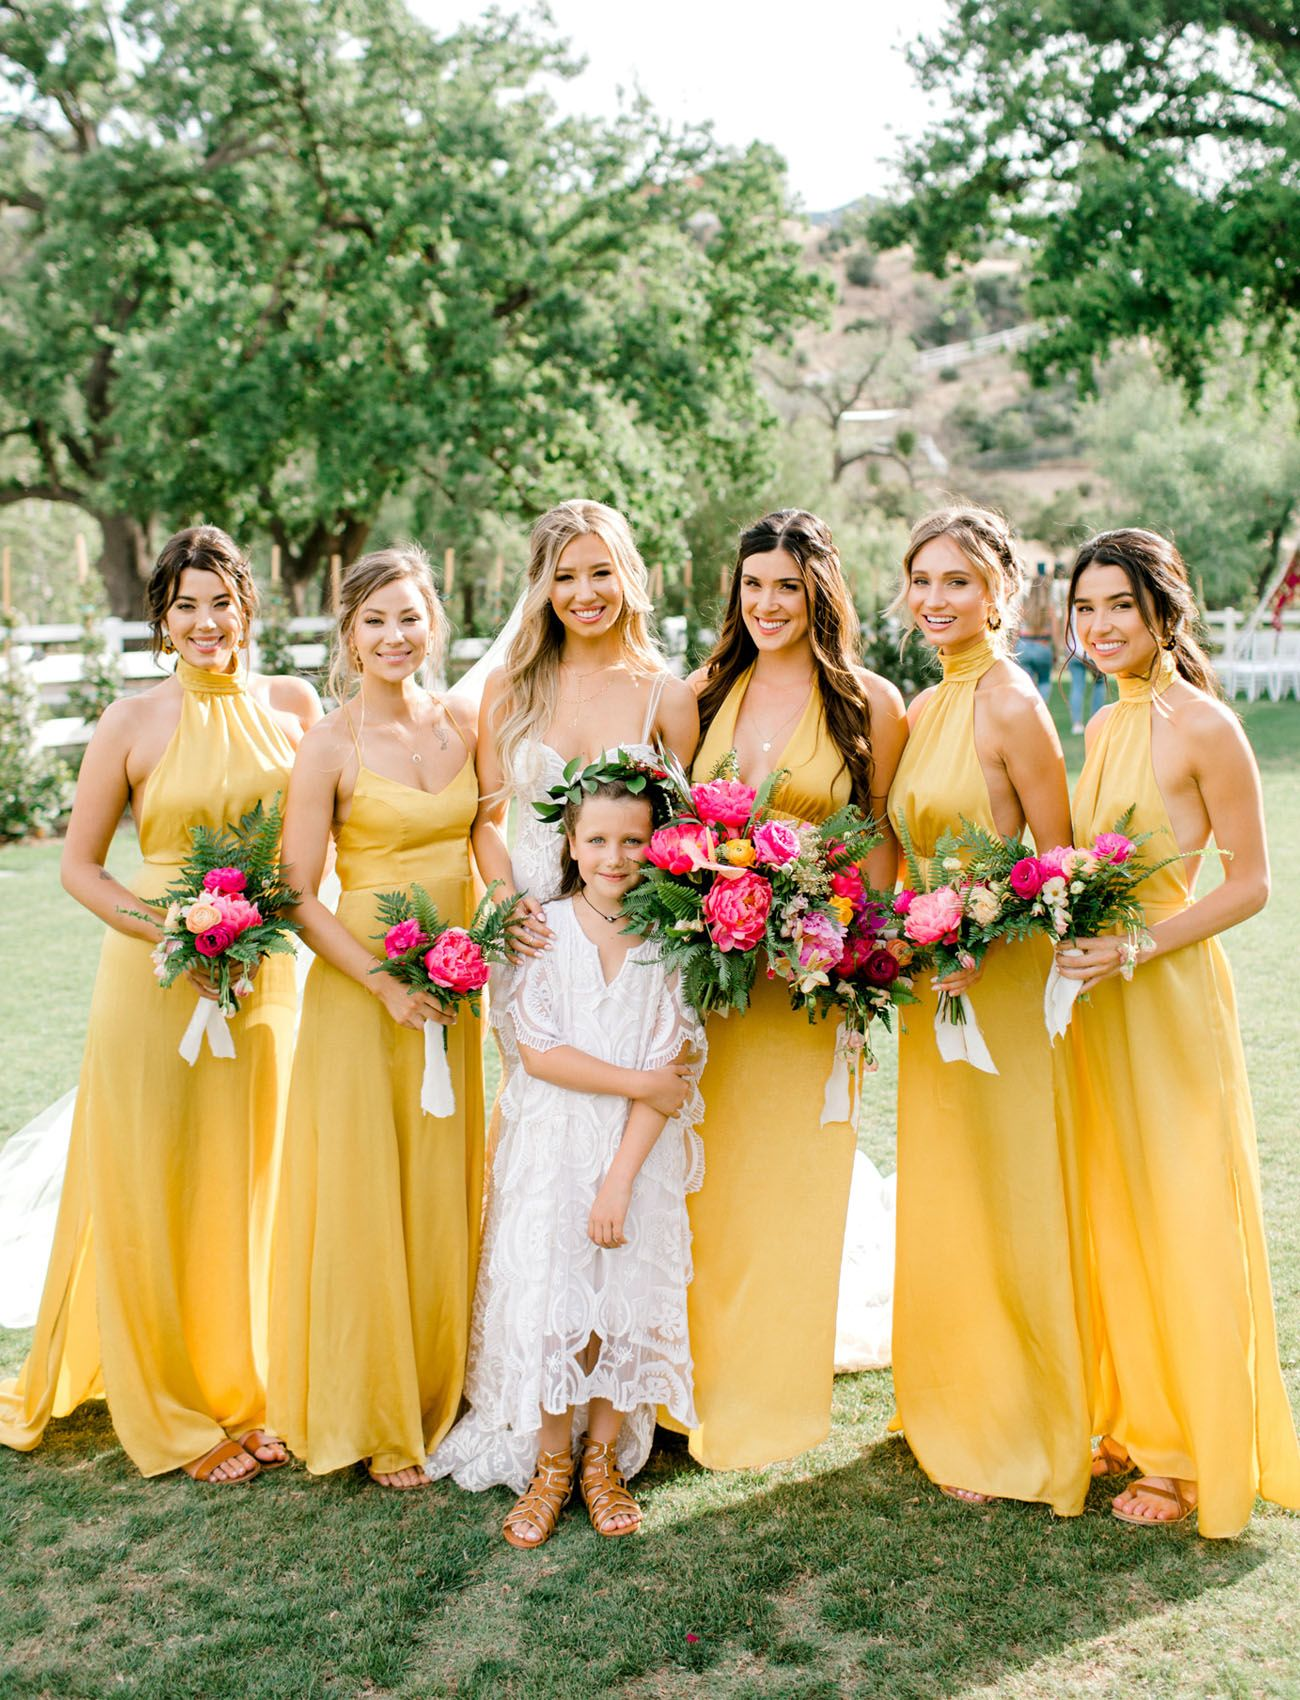 Taco Bout A Good Time A Colorful Cinco De Mayo Wedding At Brookview Ranch Green Wedding Shoes Yellow Bridesmaid Dresses Mustard Yellow Bridesmaid Dress Mustard Bridesmaid Dresses [ 1700 x 1300 Pixel ]